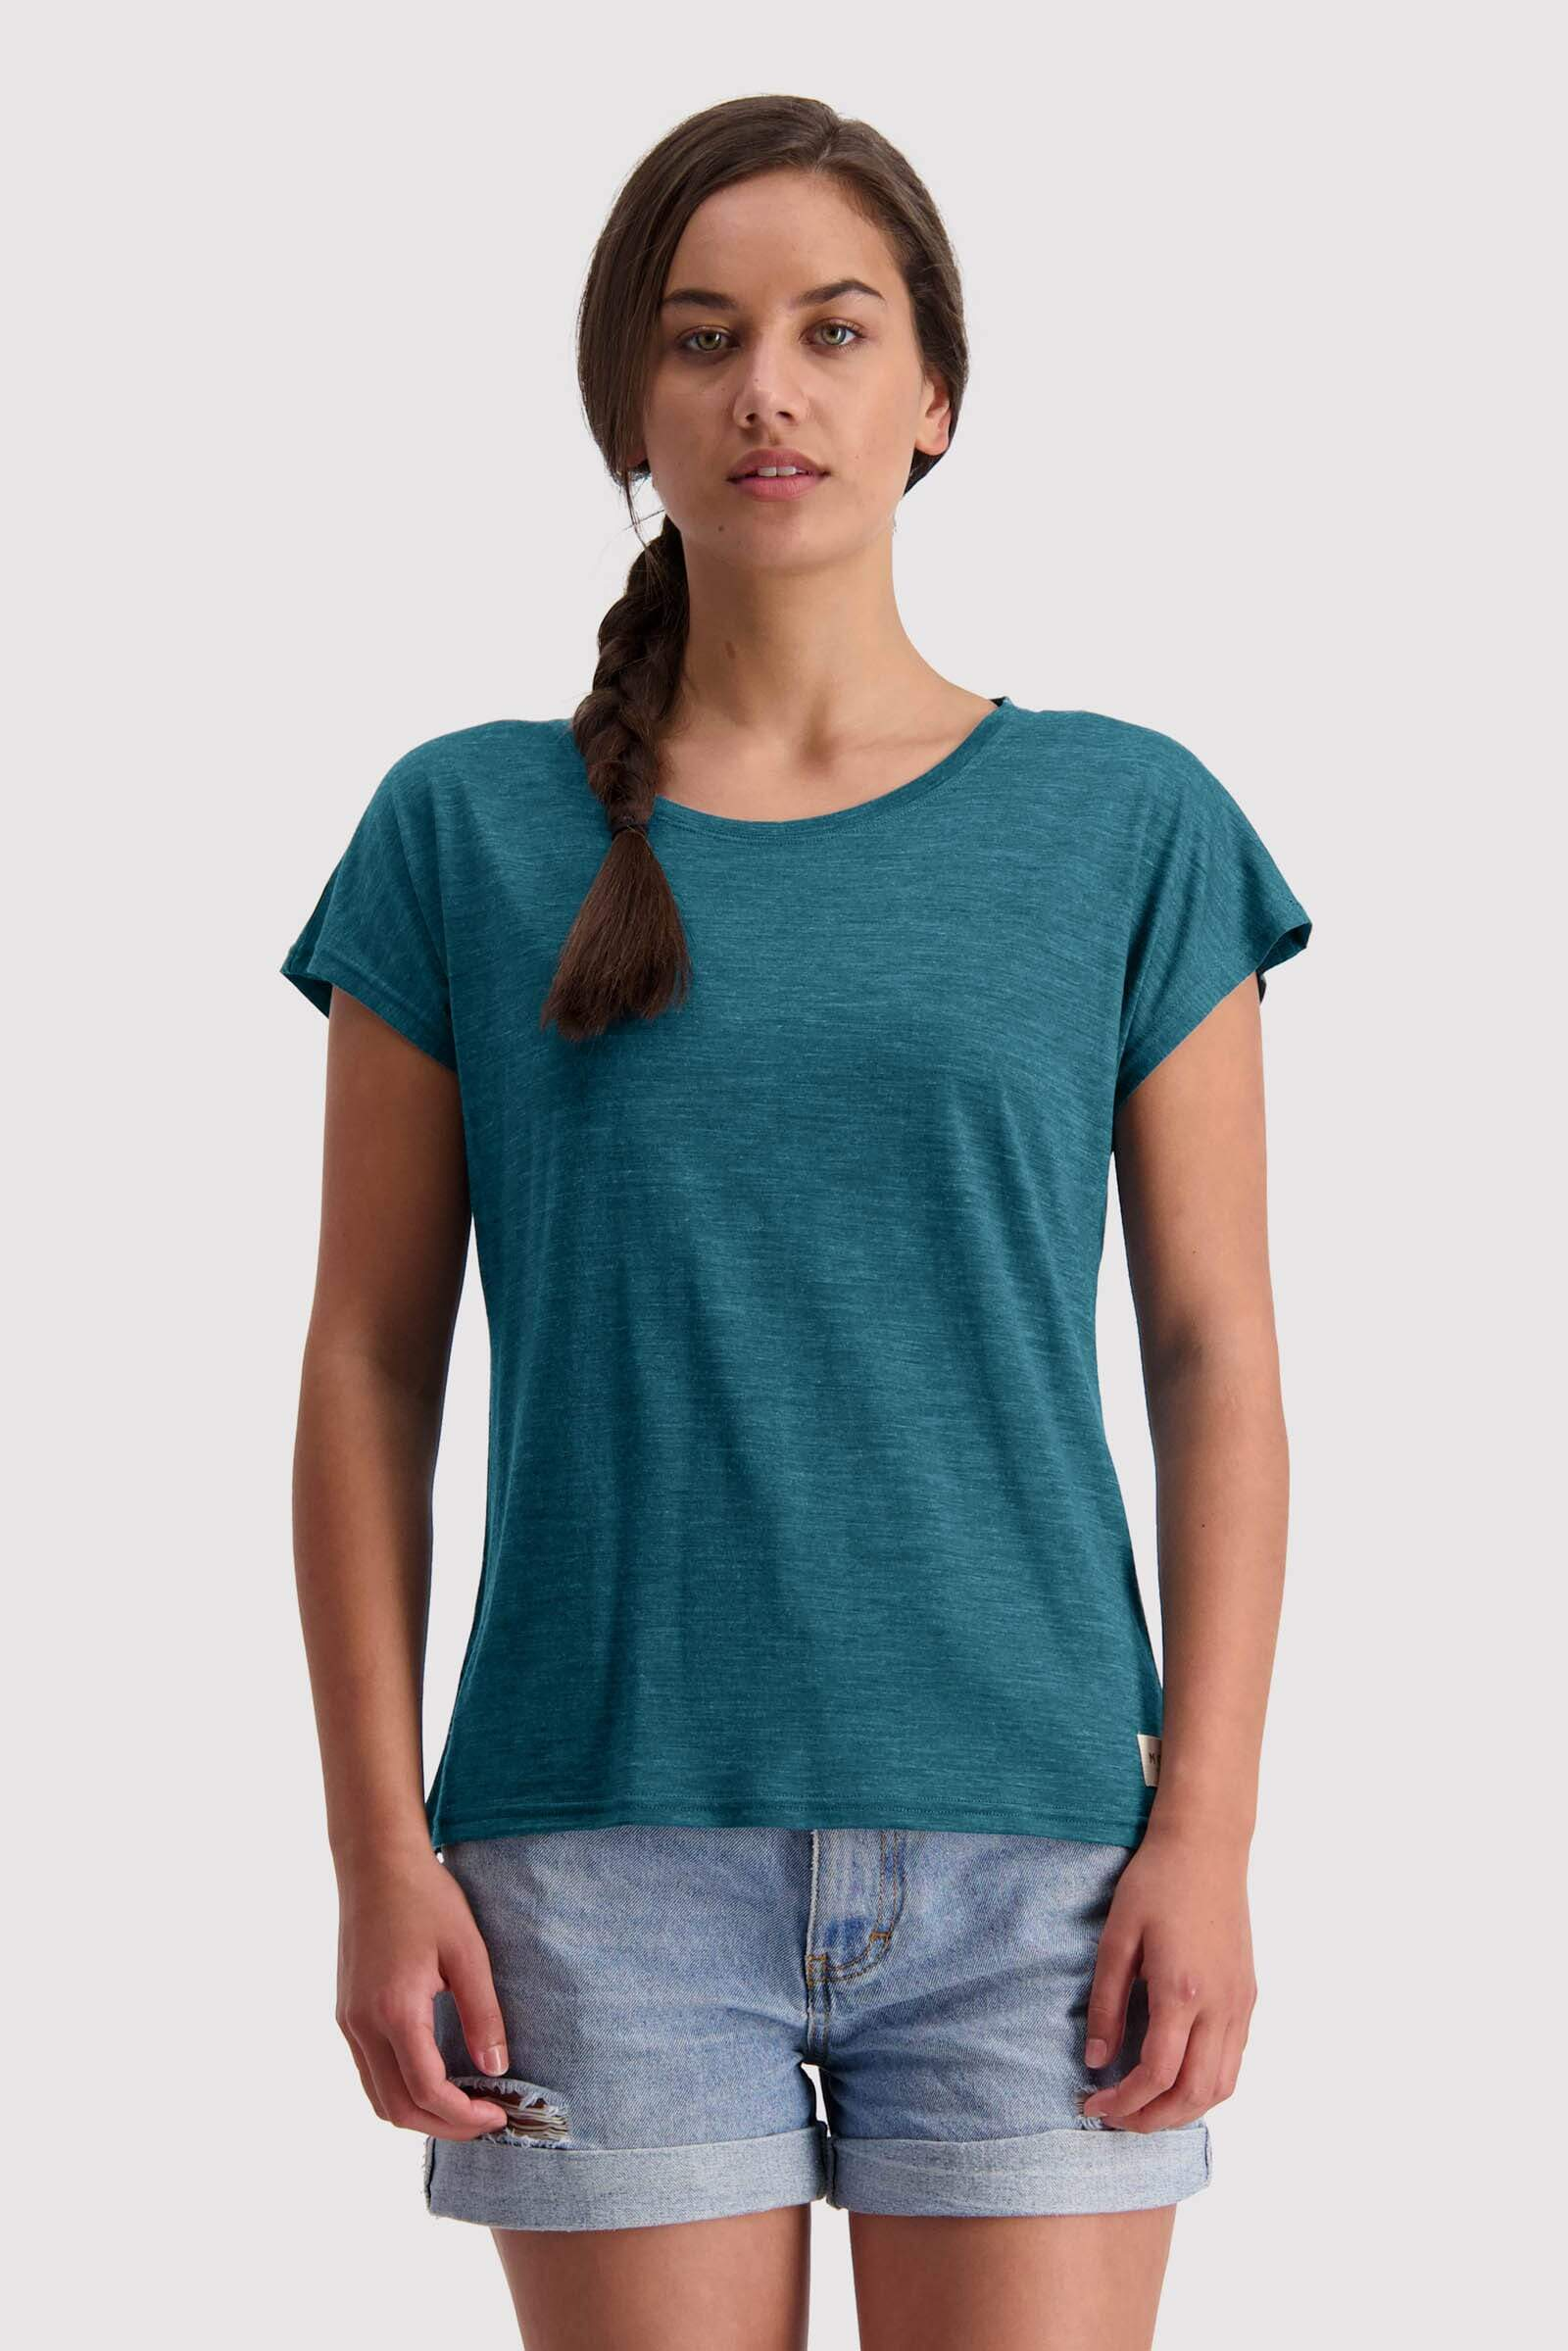 Estelle Cap Tee - Deep Teal